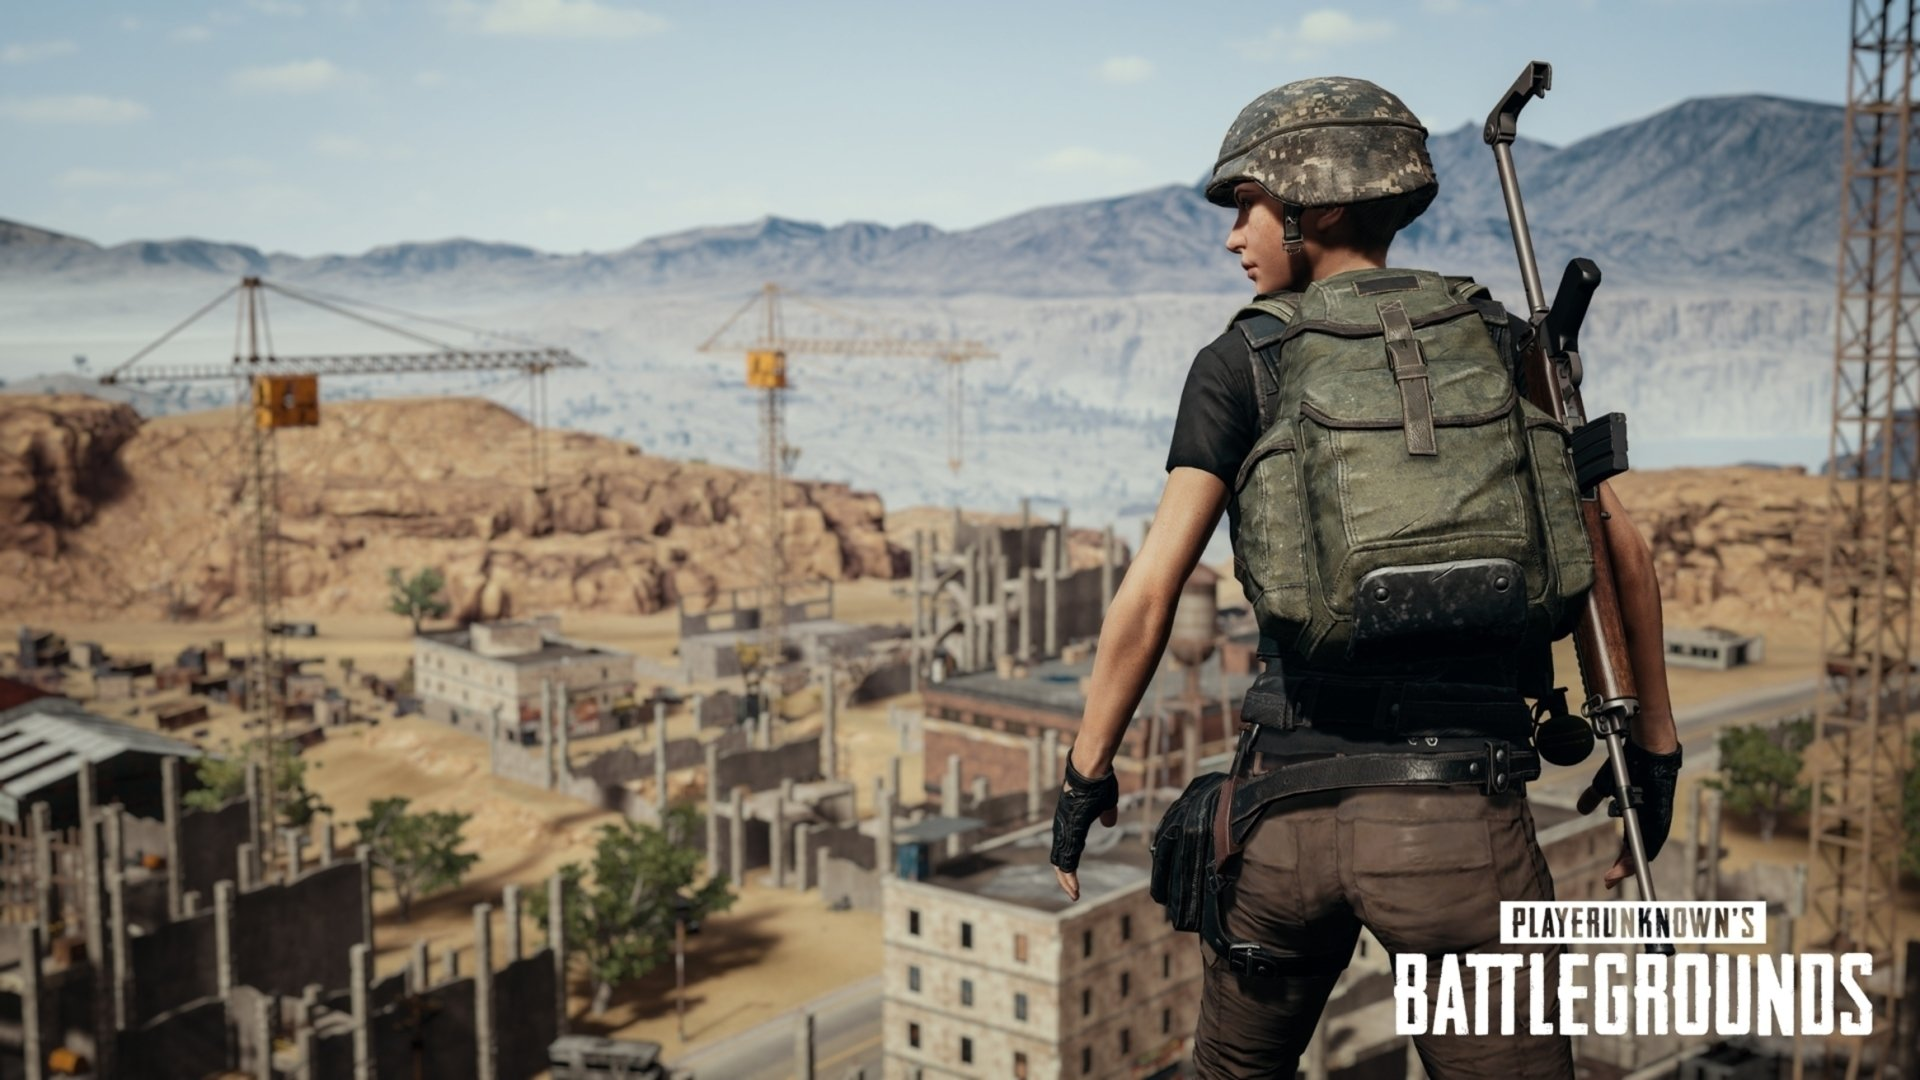 Pubg Wallpaper 1920x1080: Background Images - Read Games Review